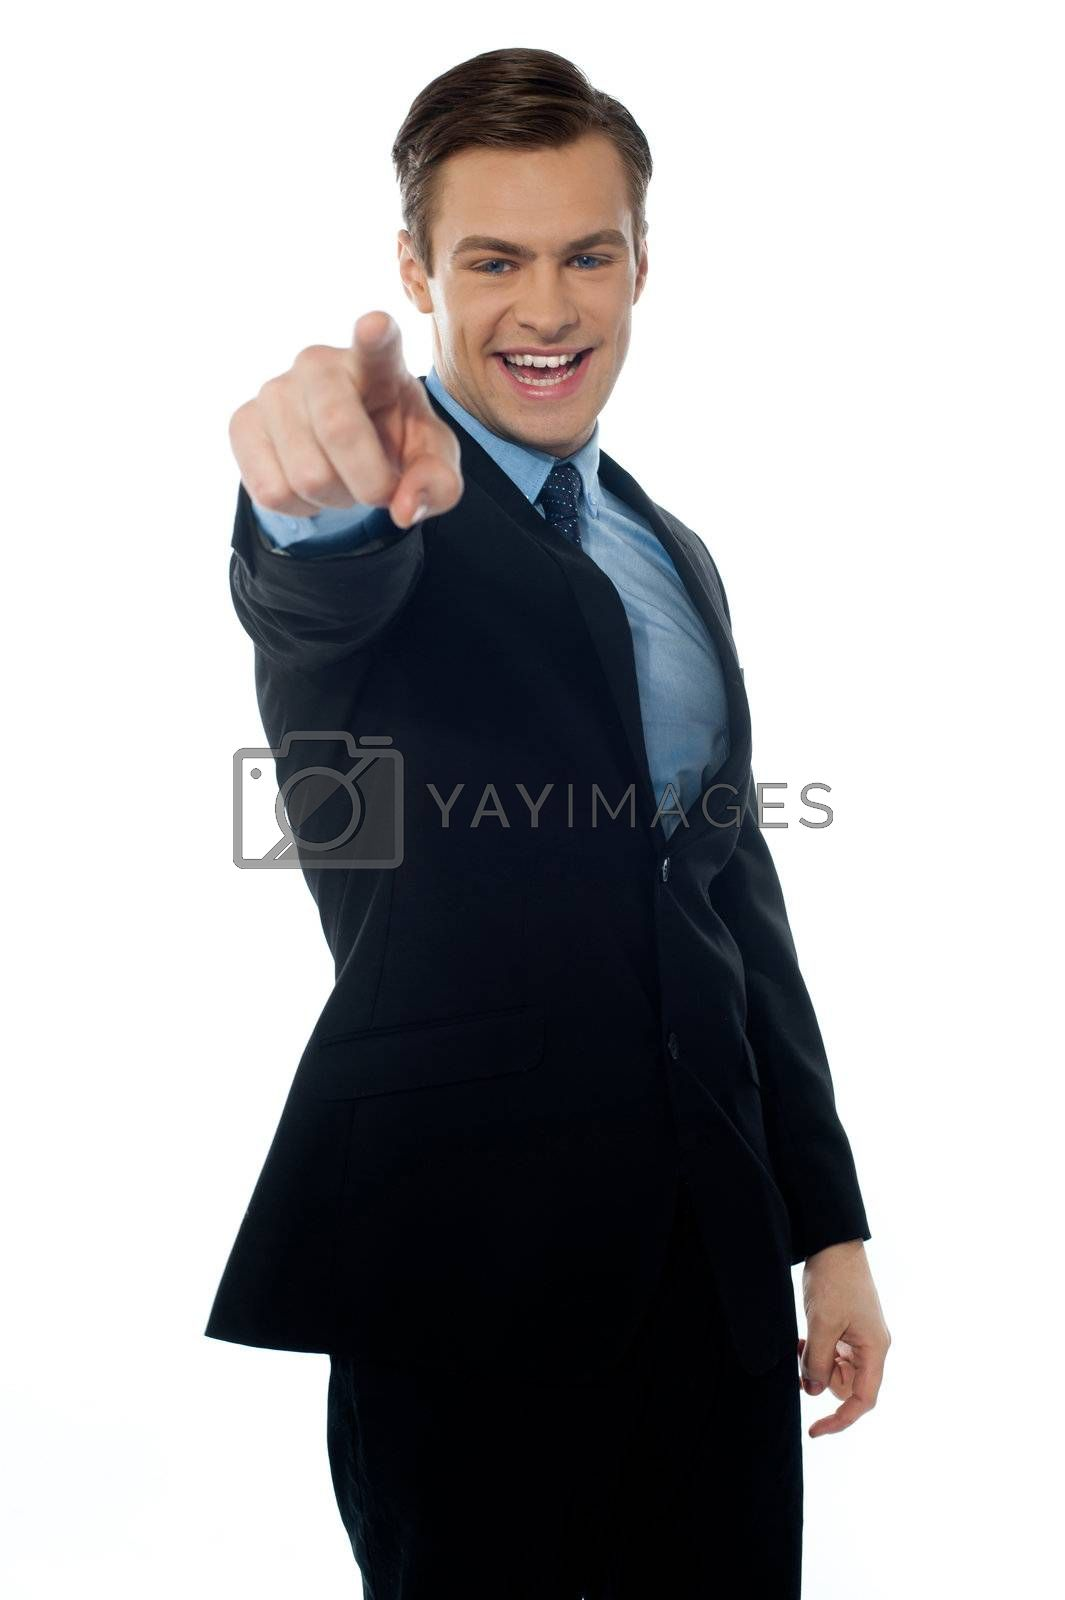 Smiling young executive pointing at you in black suit on white background